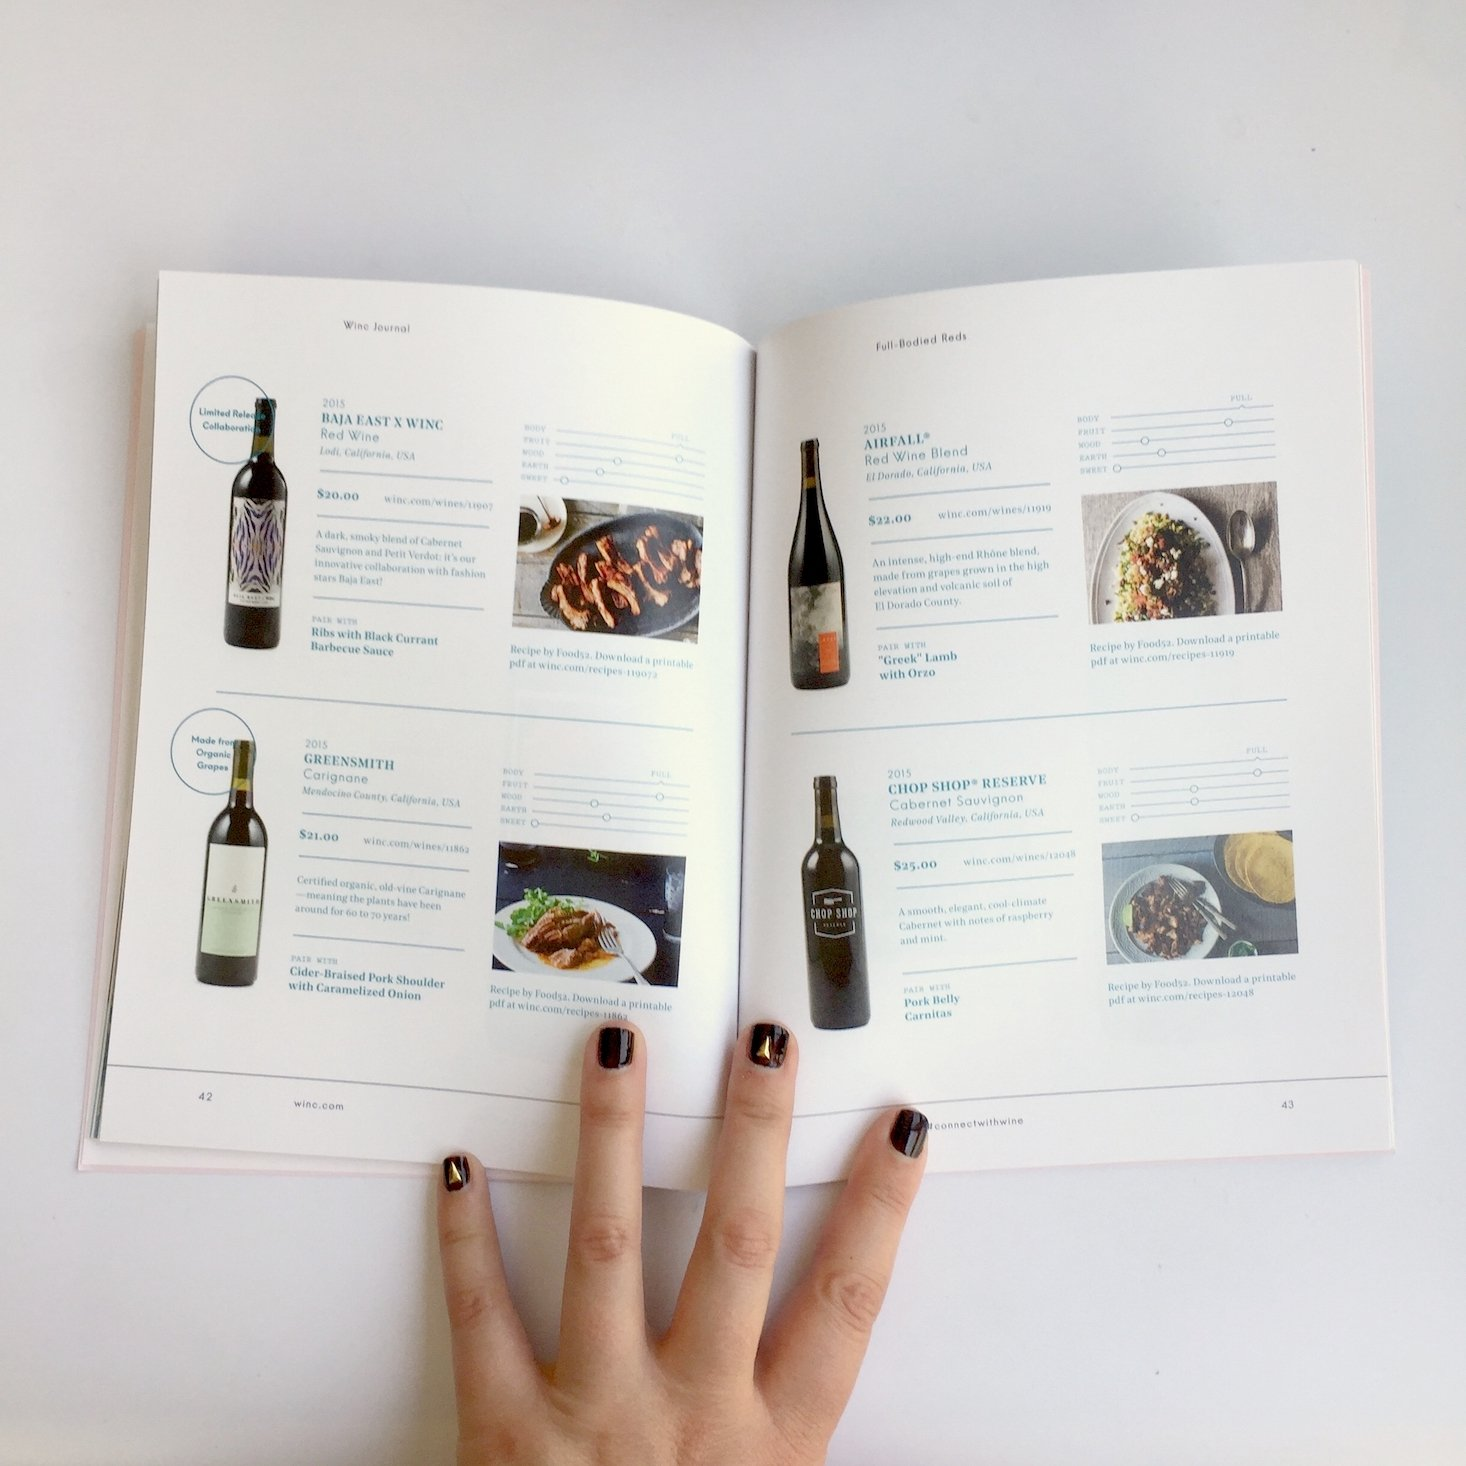 Winc-march-2017-booklet-wines